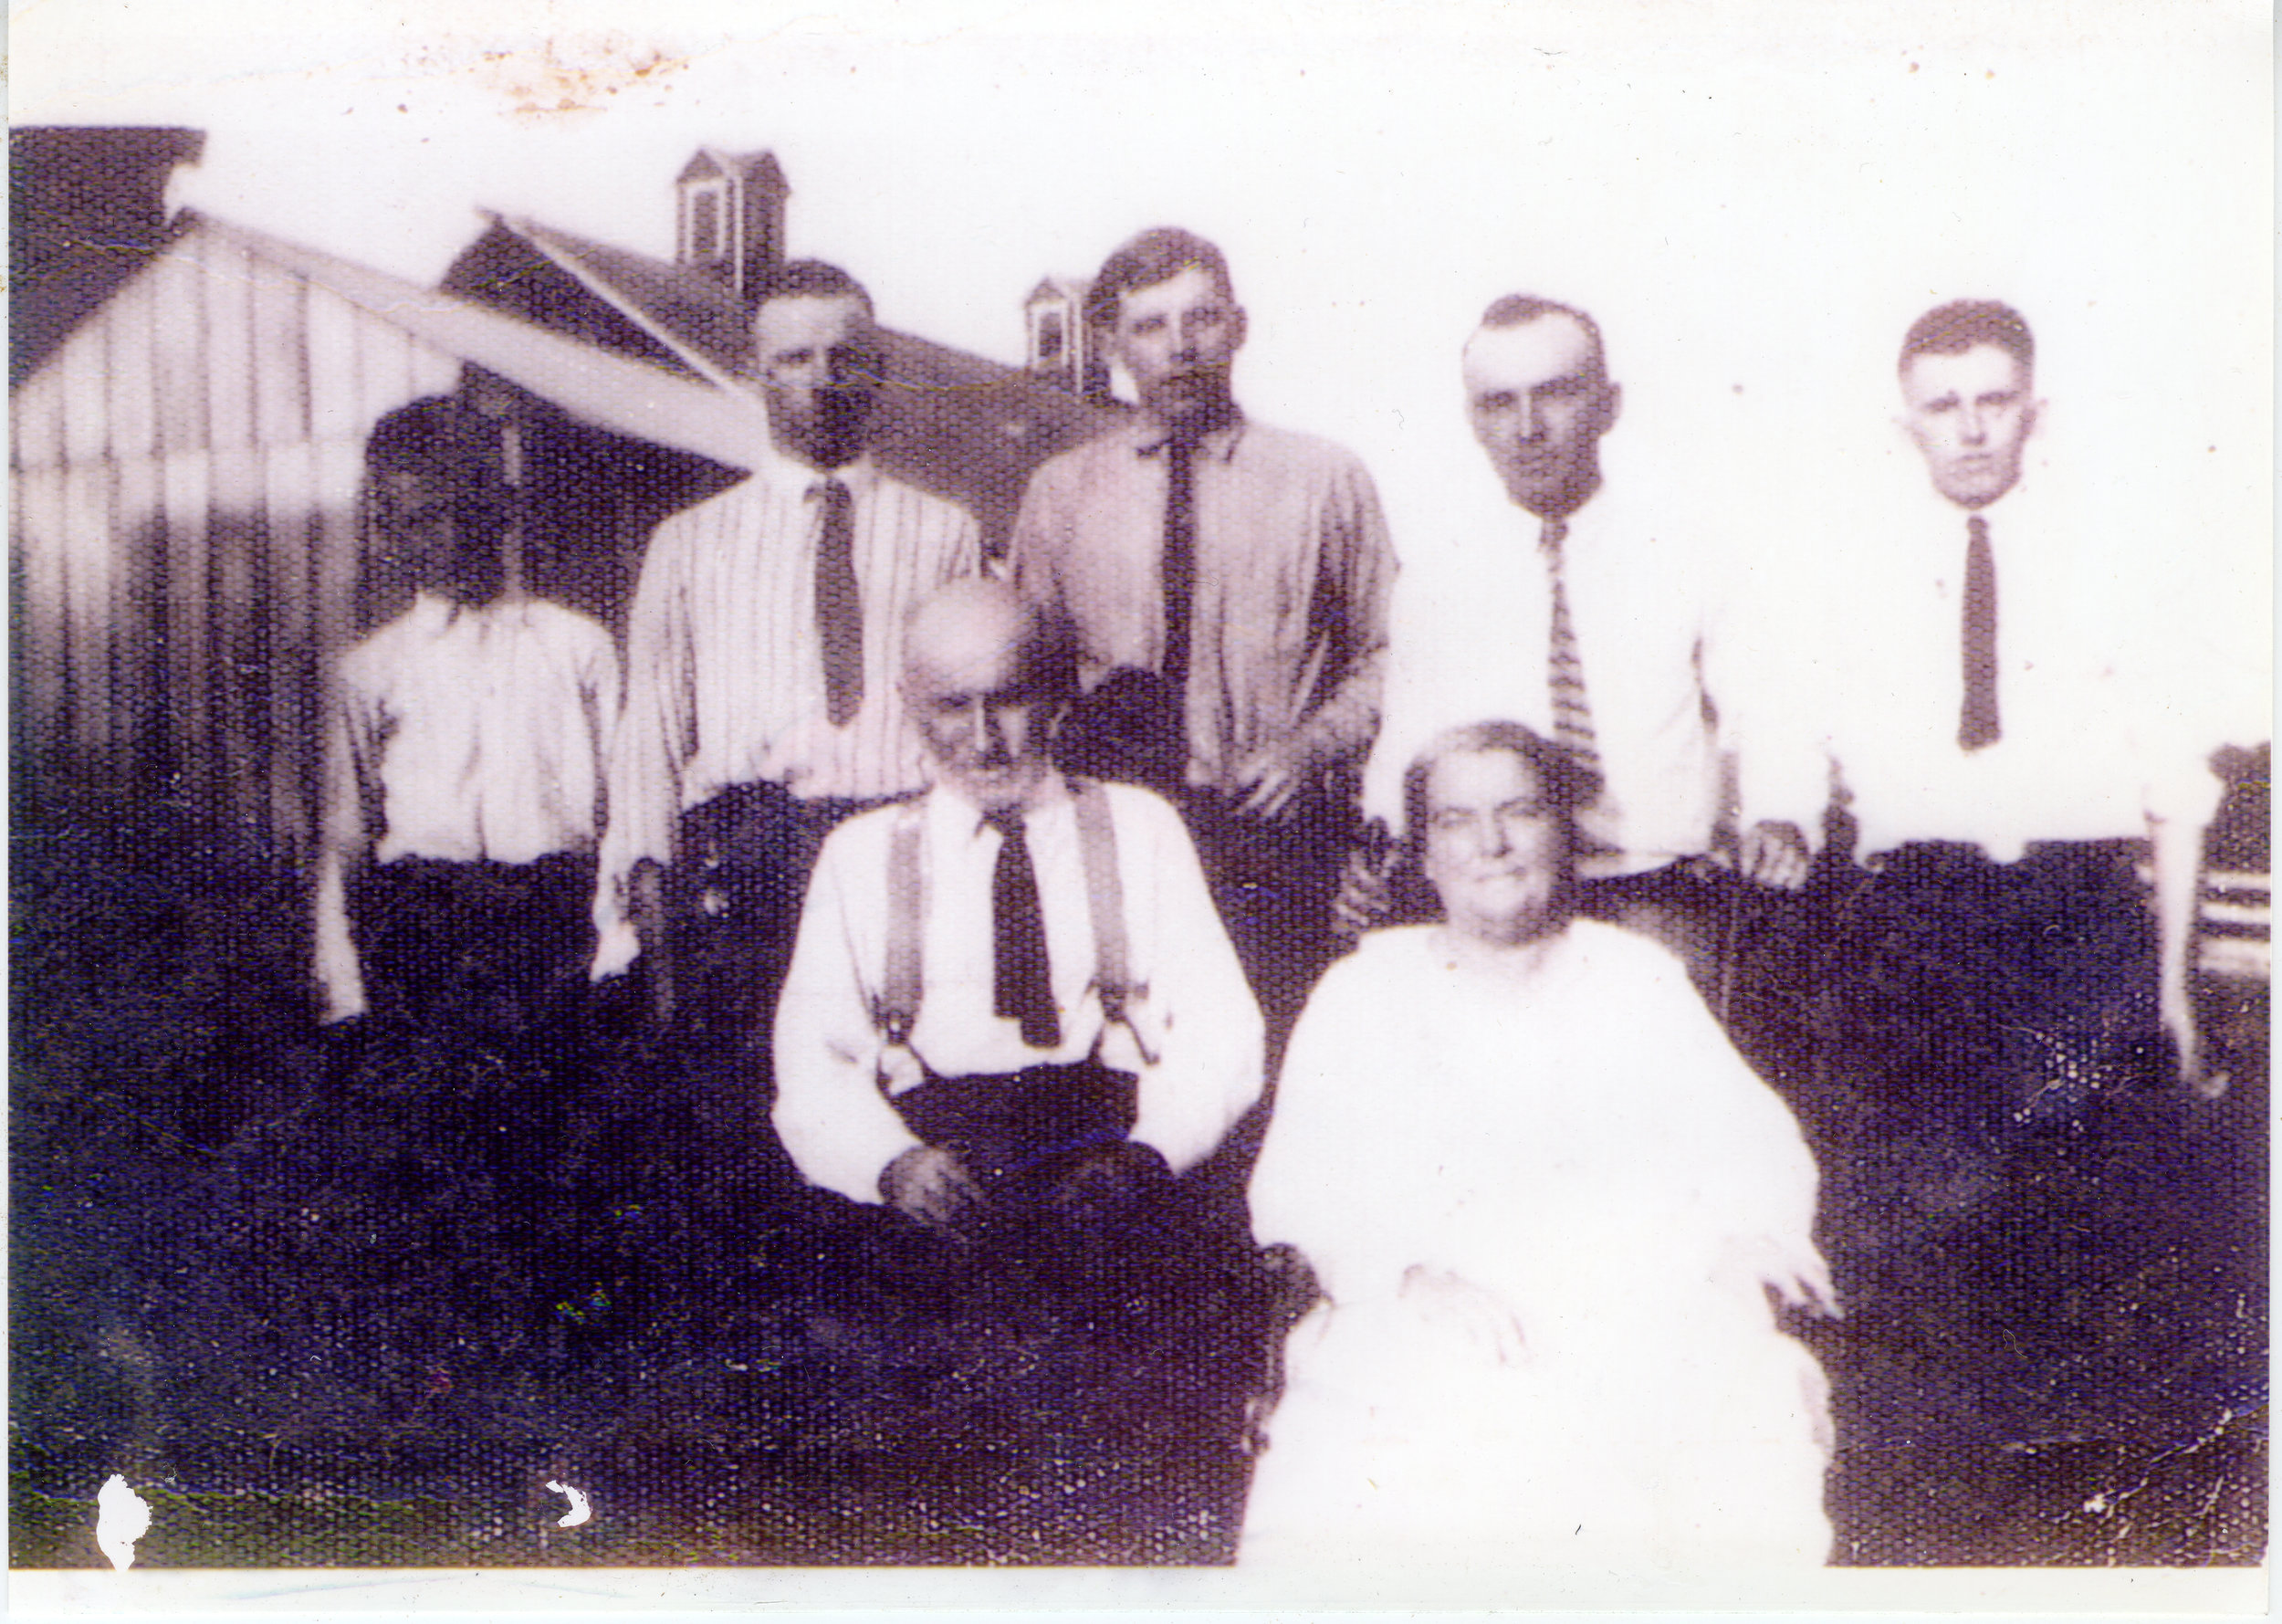 The Wolfe family, ca. 1923 (left to right: James Emmet Wolfe, Philip James Wolfe, Maurice Buckley Wolfe, John J. Wolfe, Sarah McAndrews Wolfe, Raymond Bernard Wolfe, and Melvin Wolfe)